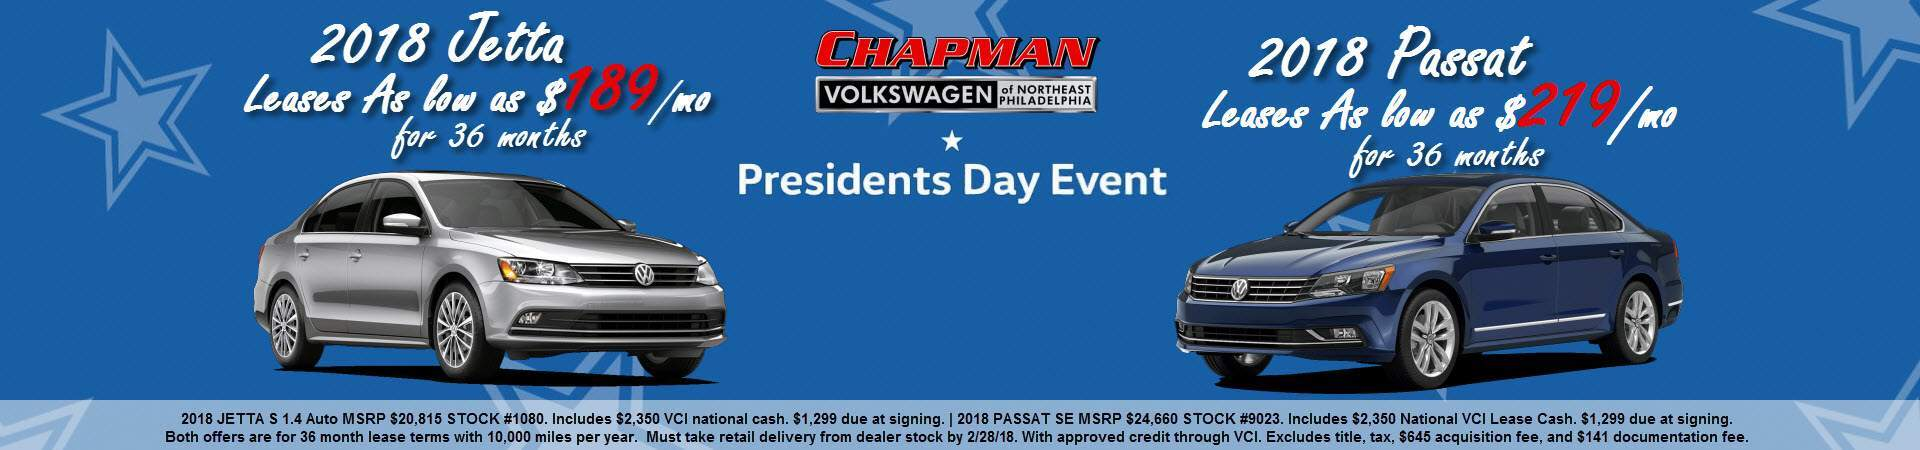 Chapman VW Presidents Day Leases